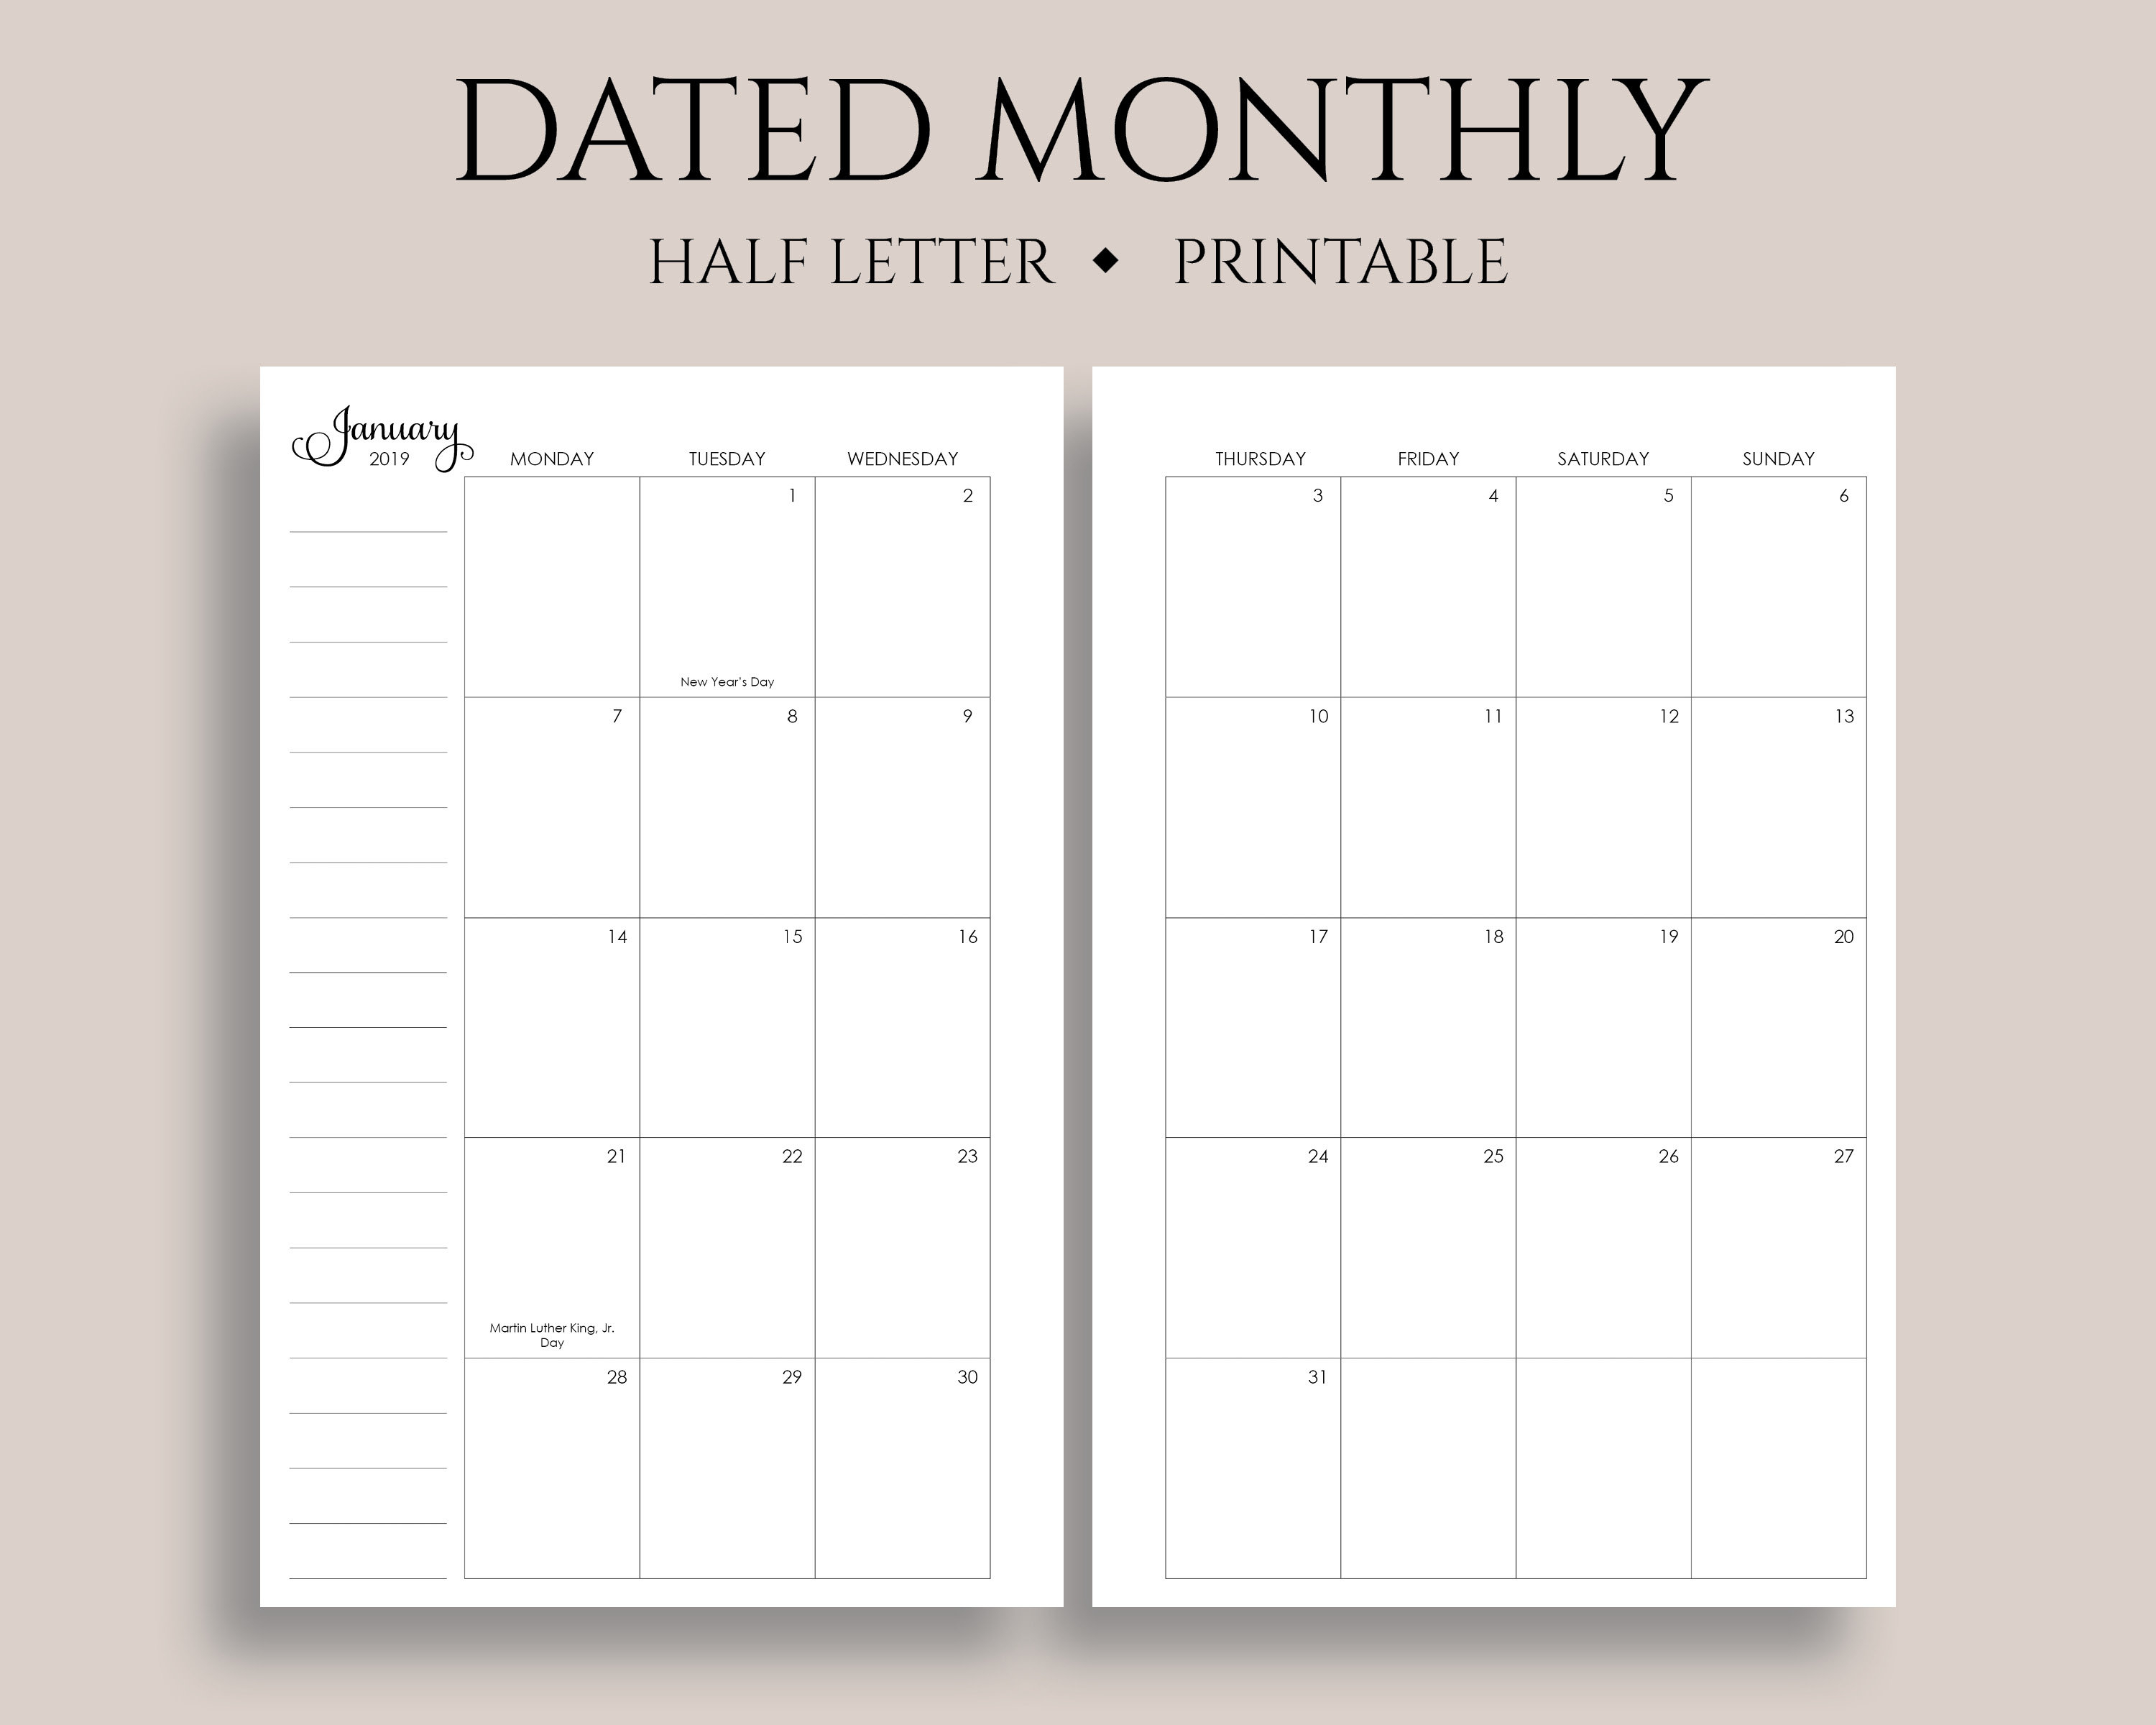 """2019 Dated Monthly Calendar Printable Planner Inserts, Monday Start, Mo2P,  U.s. Holidays ~ Half Letter  5.5"""" X 8.5"""" Pdf Download pertaining to Printable Calendar 5.5 X 8.5"""